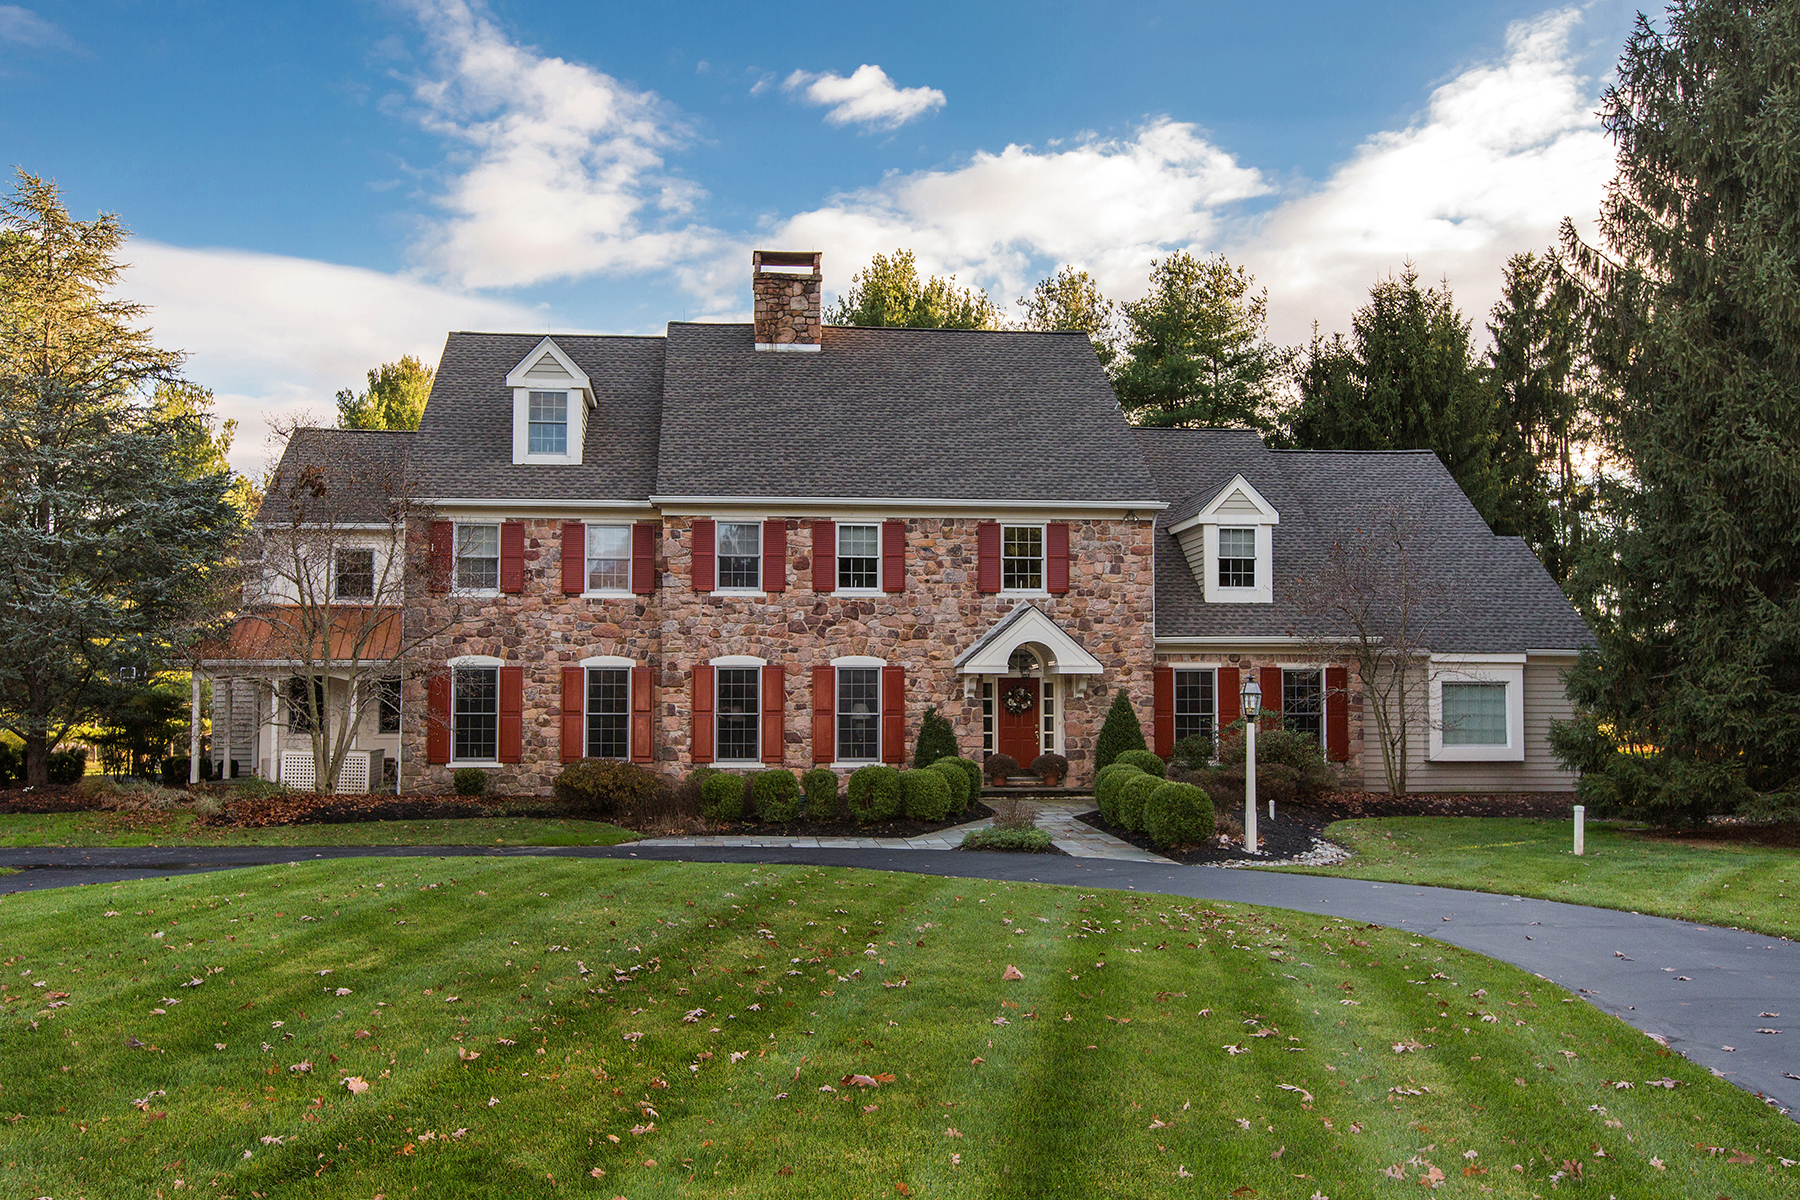 Single Family Home for Sale at New Hope, PA 9 Bellinghamshire Place New Hope, Pennsylvania, 18938 United States